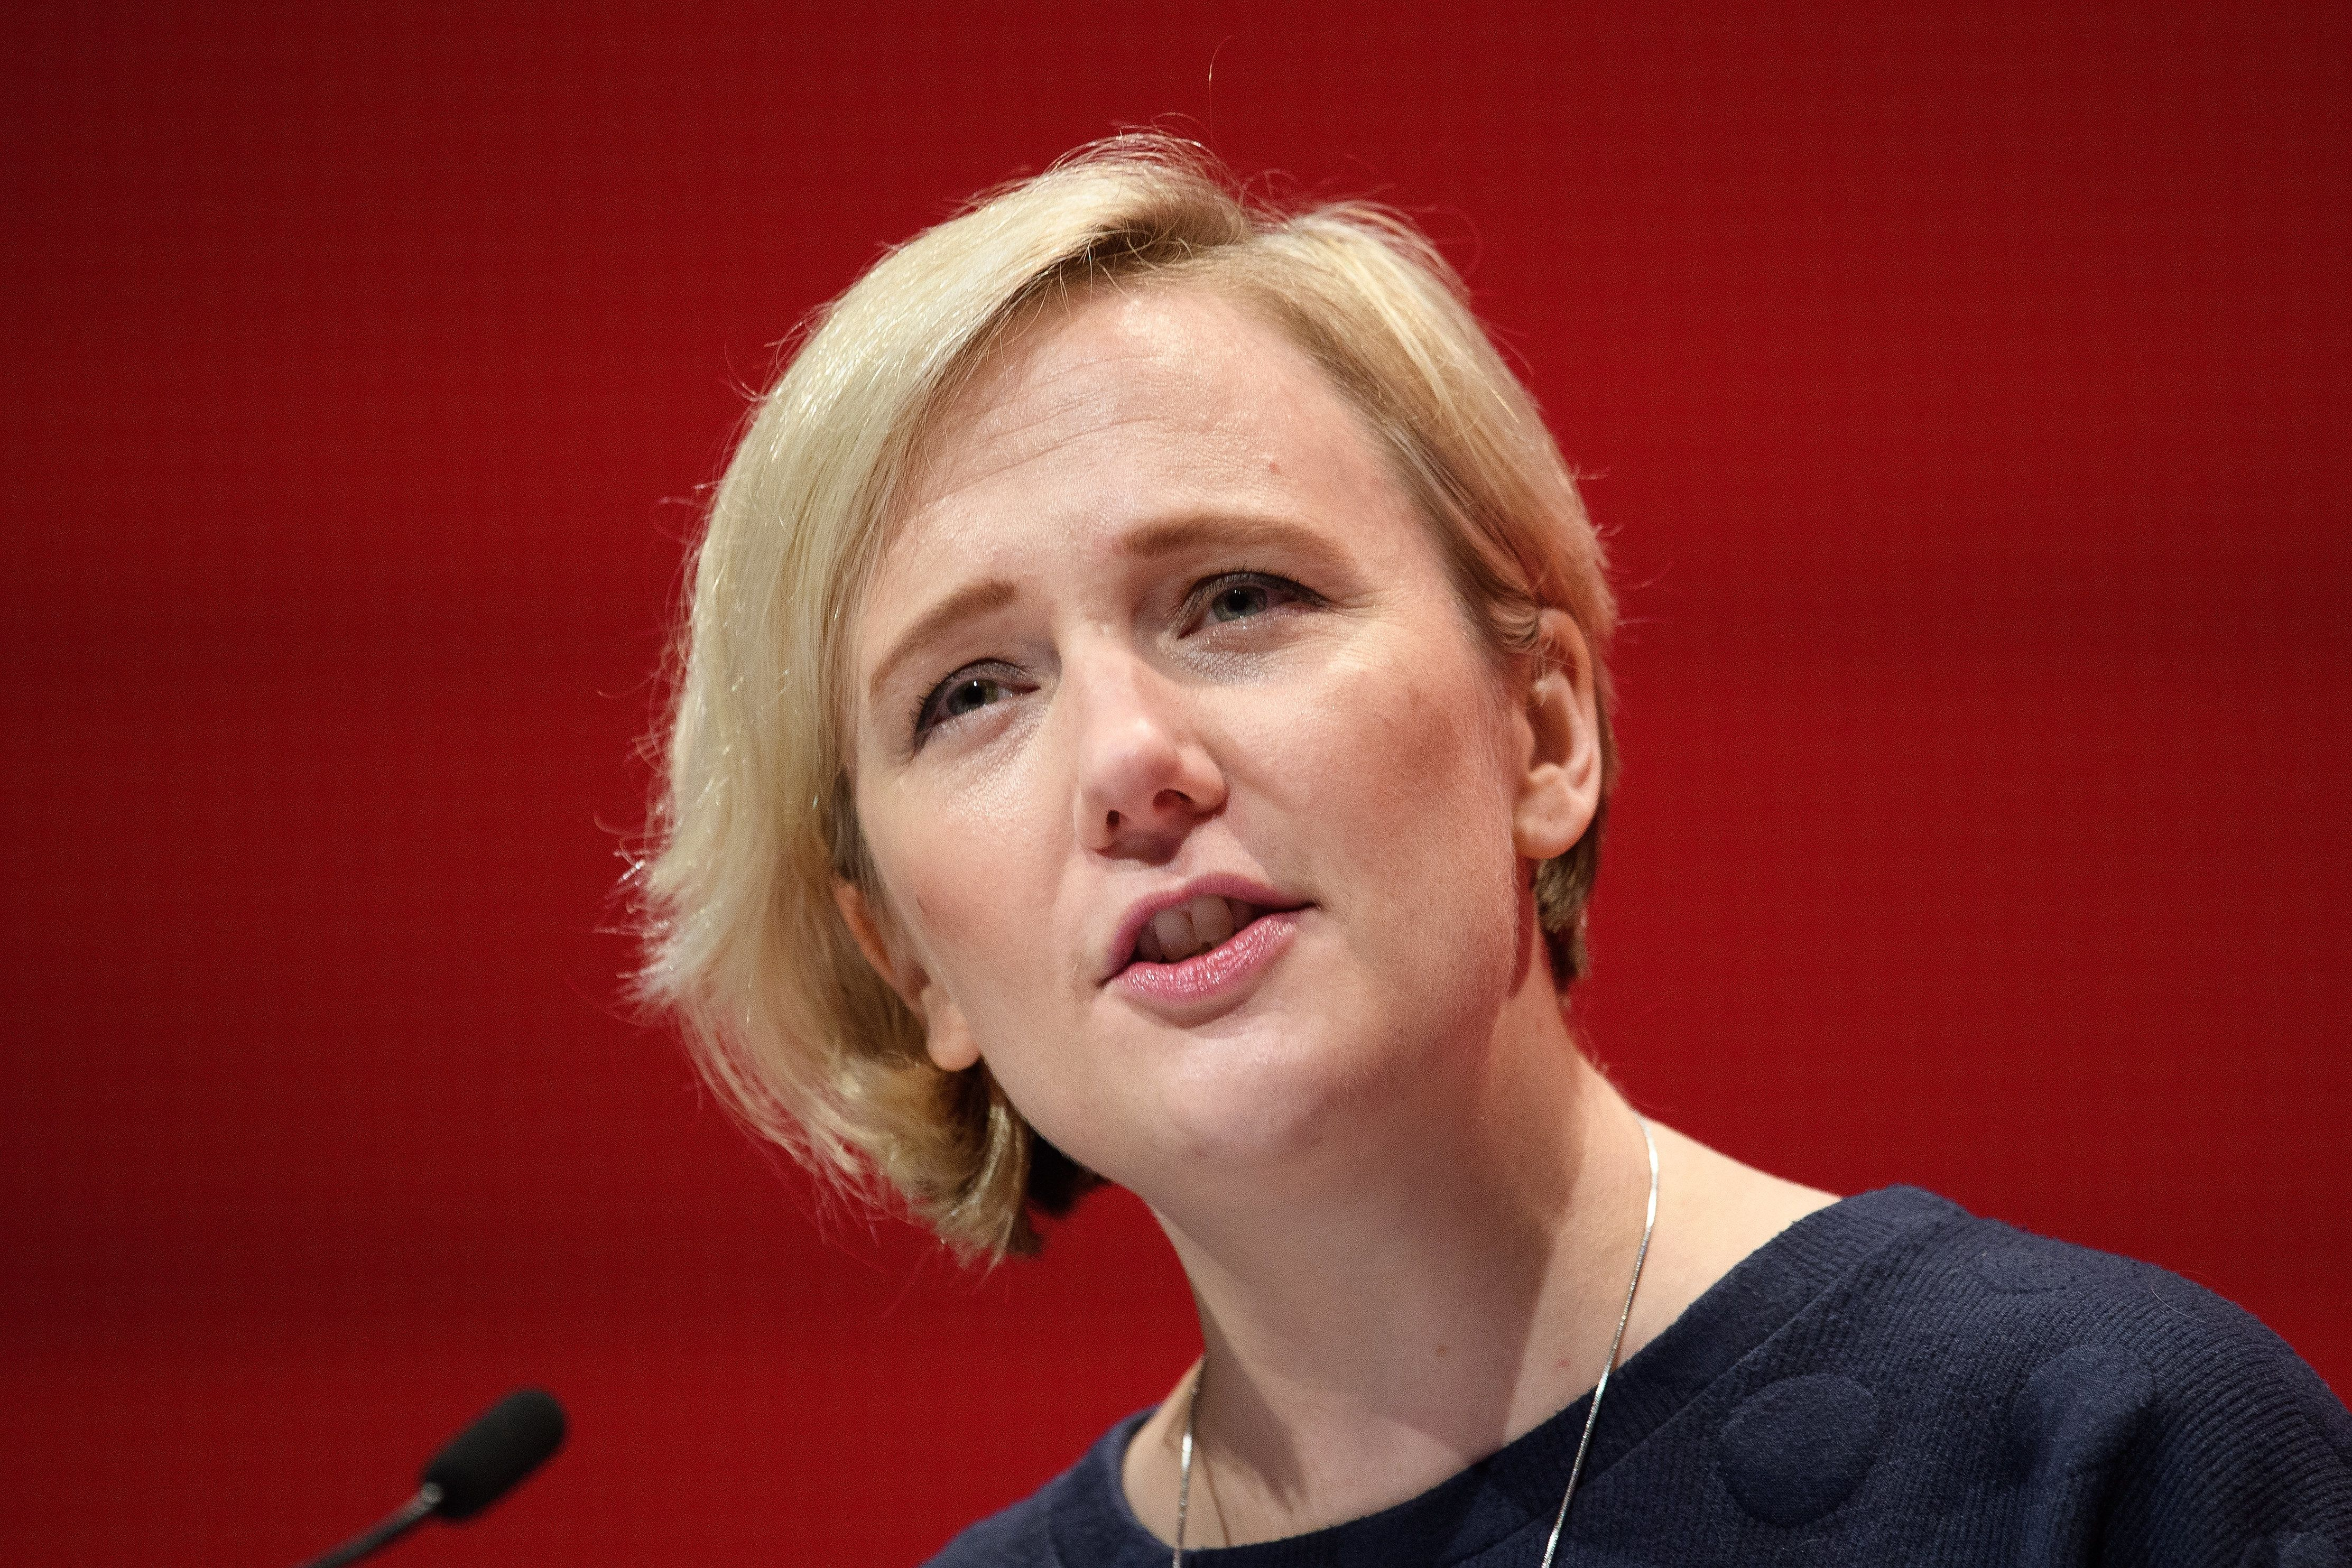 Labour MP Stella Creasy has been leading calls to change the government's current guidelines on sex and...